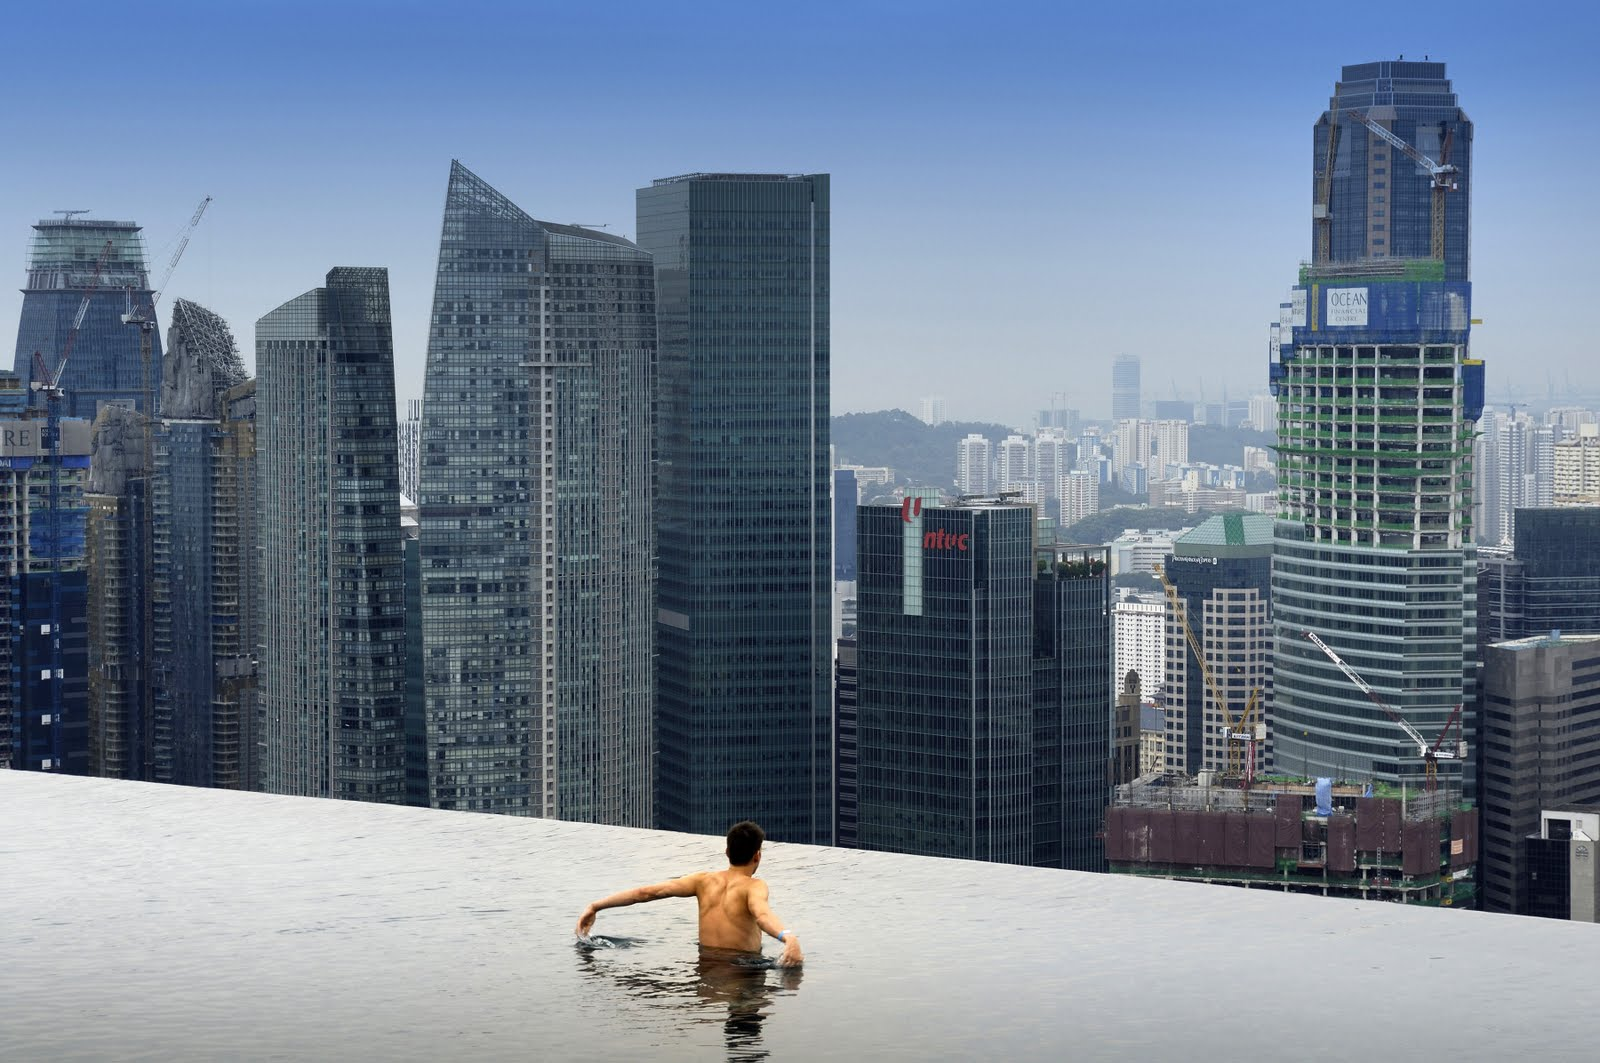 Marina Bay Sands Singapore World Visits Things To Do In Marina Bay Sands Resorts In